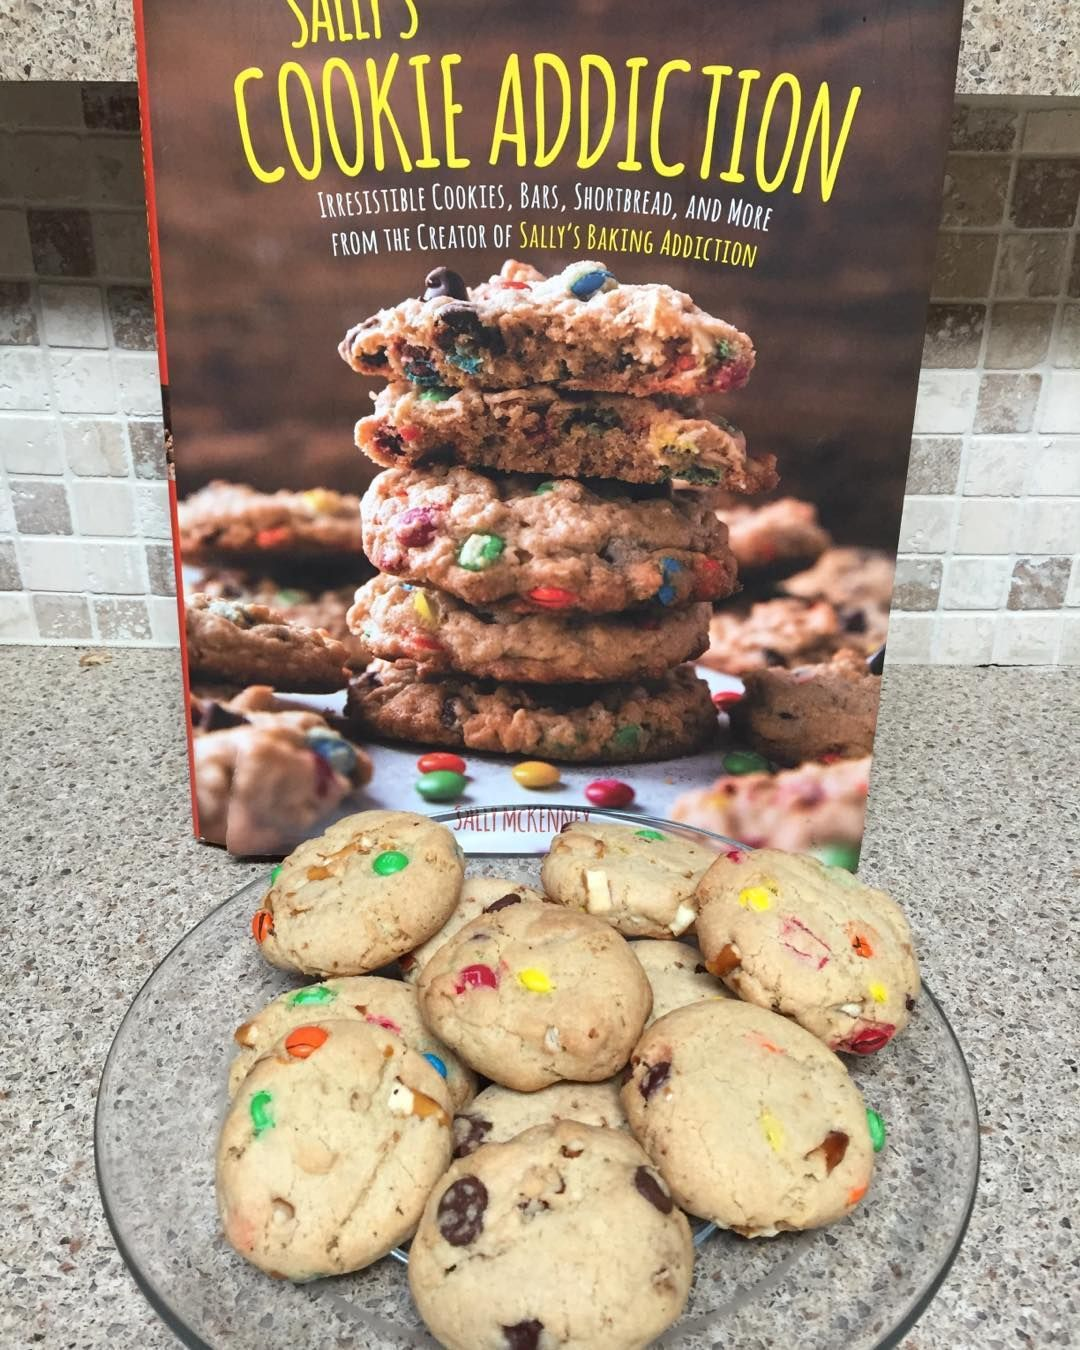 1 cookie  dough with many combinations to add in what you like Here I did the Ci - 1 cookie 🍪 dough with many combinations to add in what you like😀 Here I did the Cinnamon Chocolate Pecan and the Sweet and Salty M&M's Combo 😋 #sallysbakingaddiction #cookierecipes #pretzels #pecans #chipits #homebaked #foodblogger #cookbooks #homebakedcookies #sweetandsaltymx #influencermarketing #getinmytummy #irristible #bakesale #sallymckenney #digitalmarketing #experimentalmarketing #foodporn #bakingmakesm